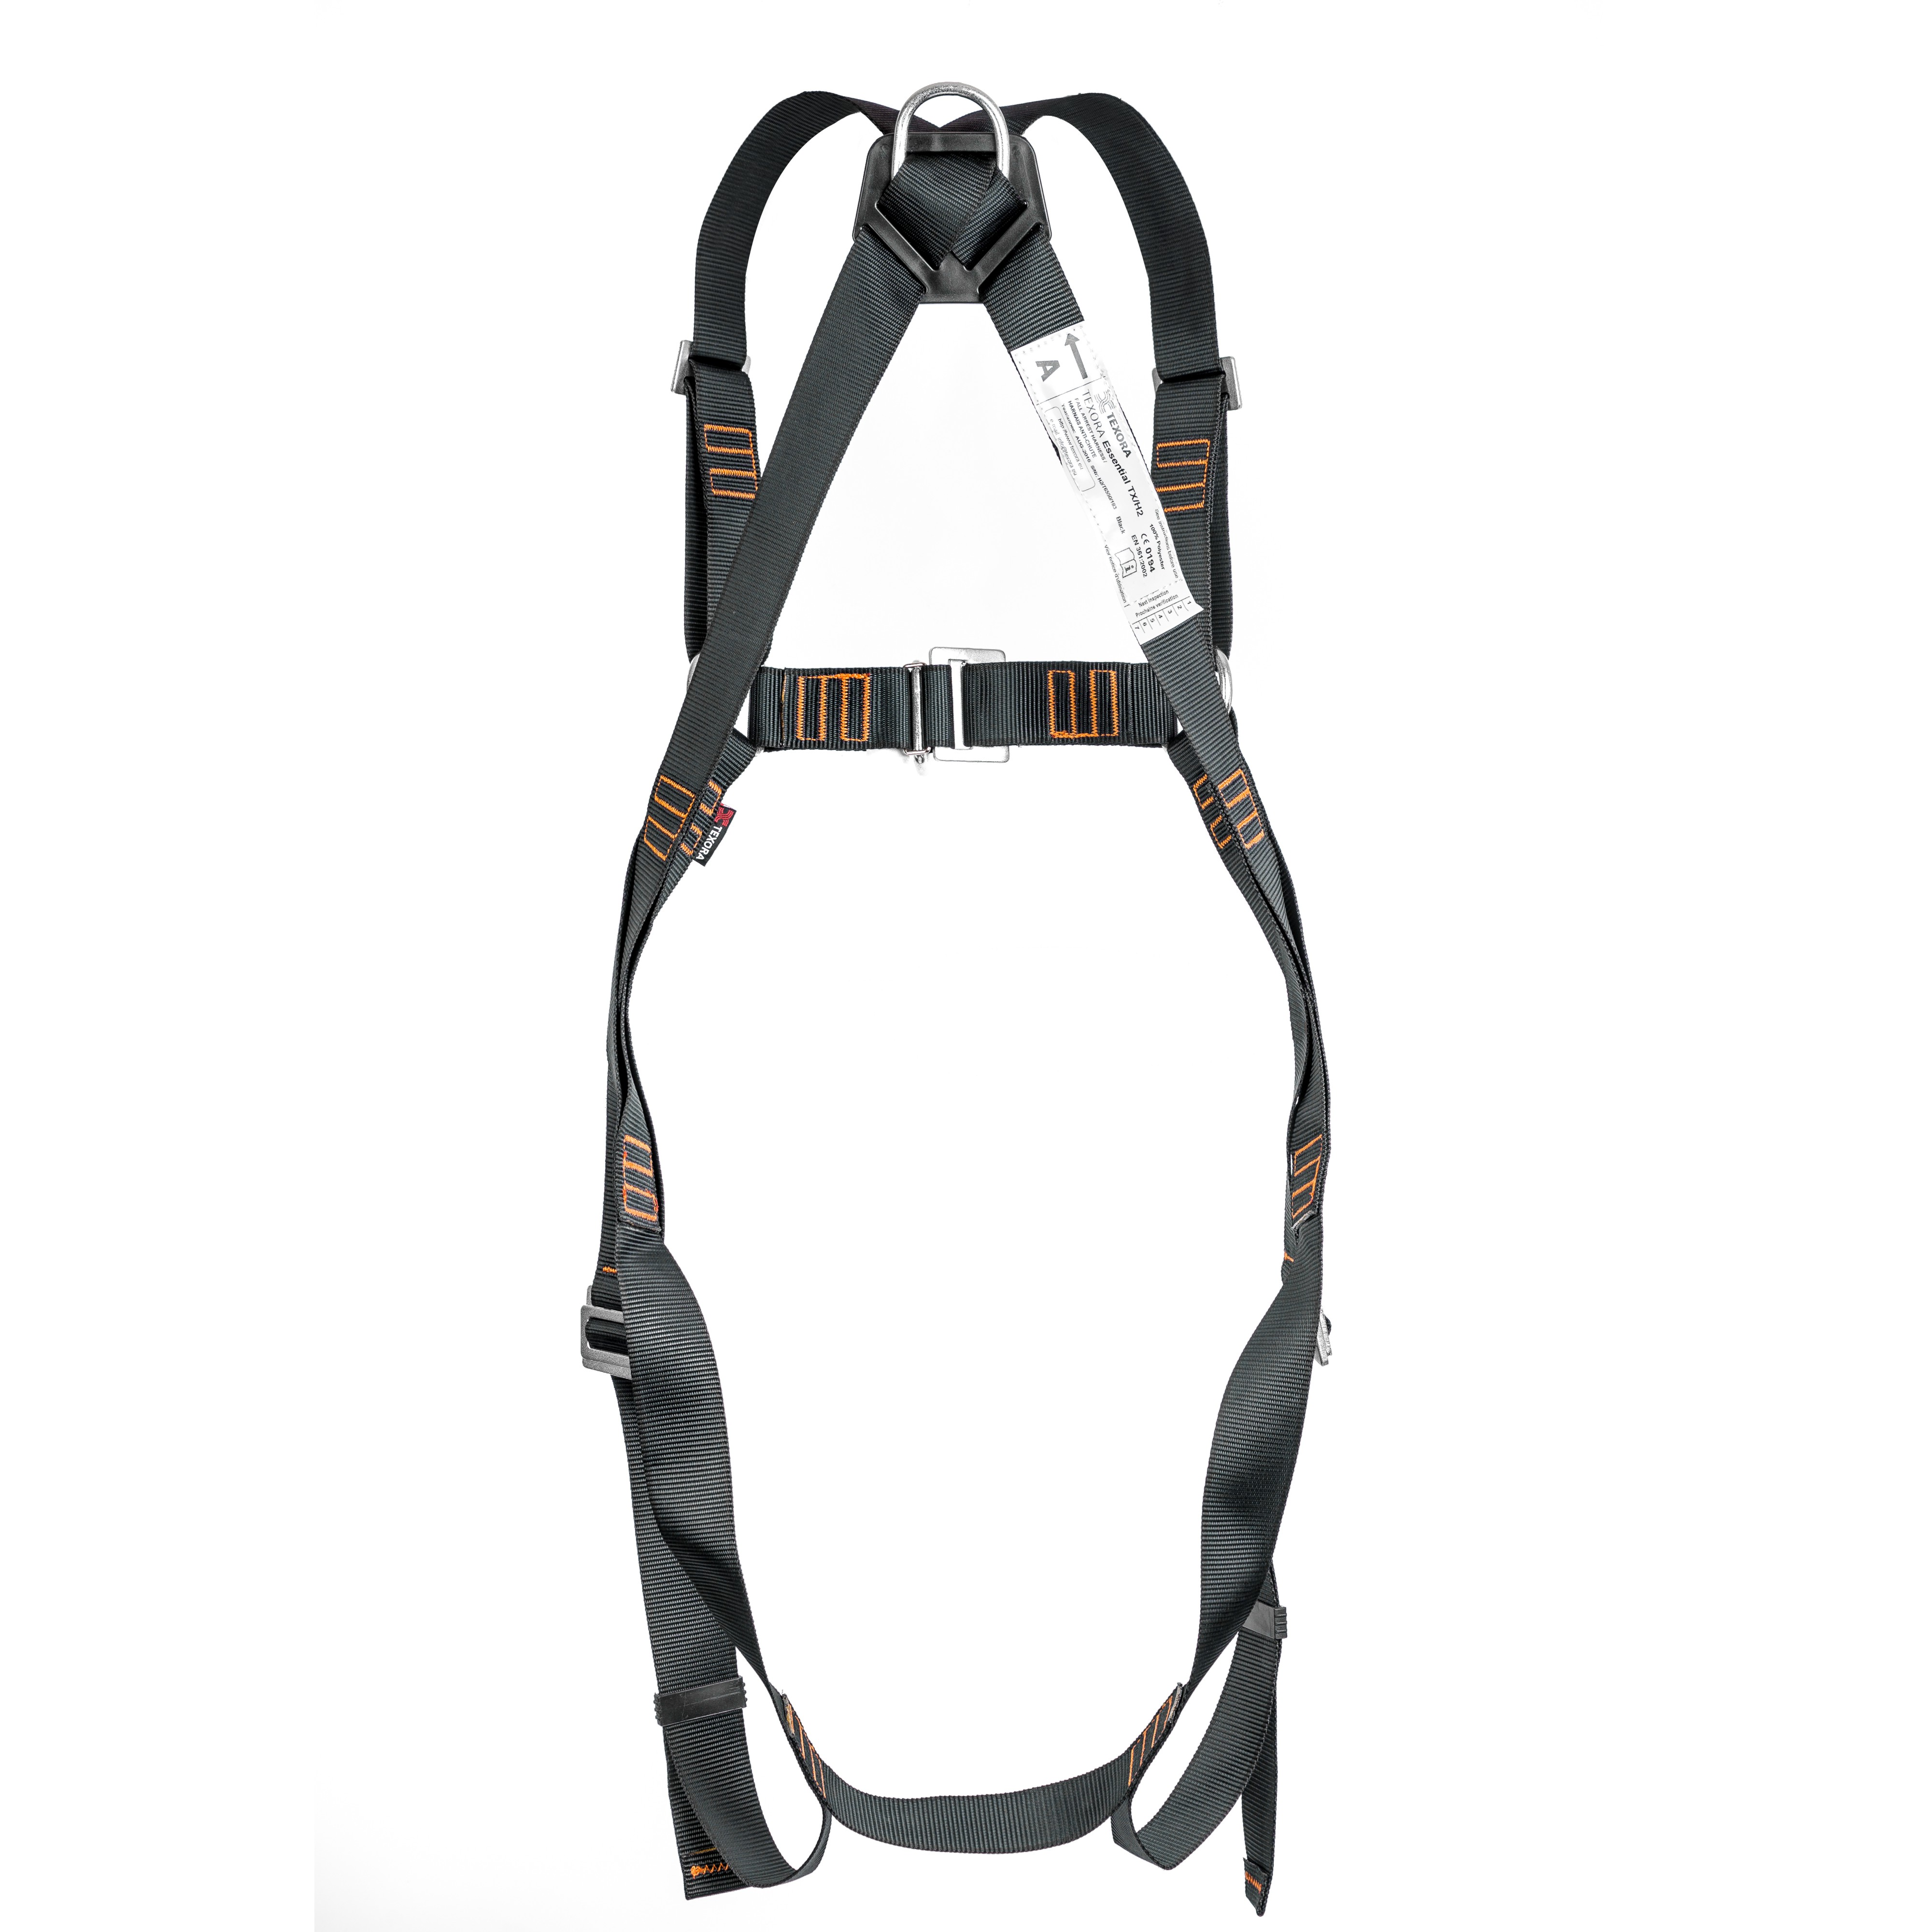 Texora Textile Products For Lifting Safety Harness Previousnext